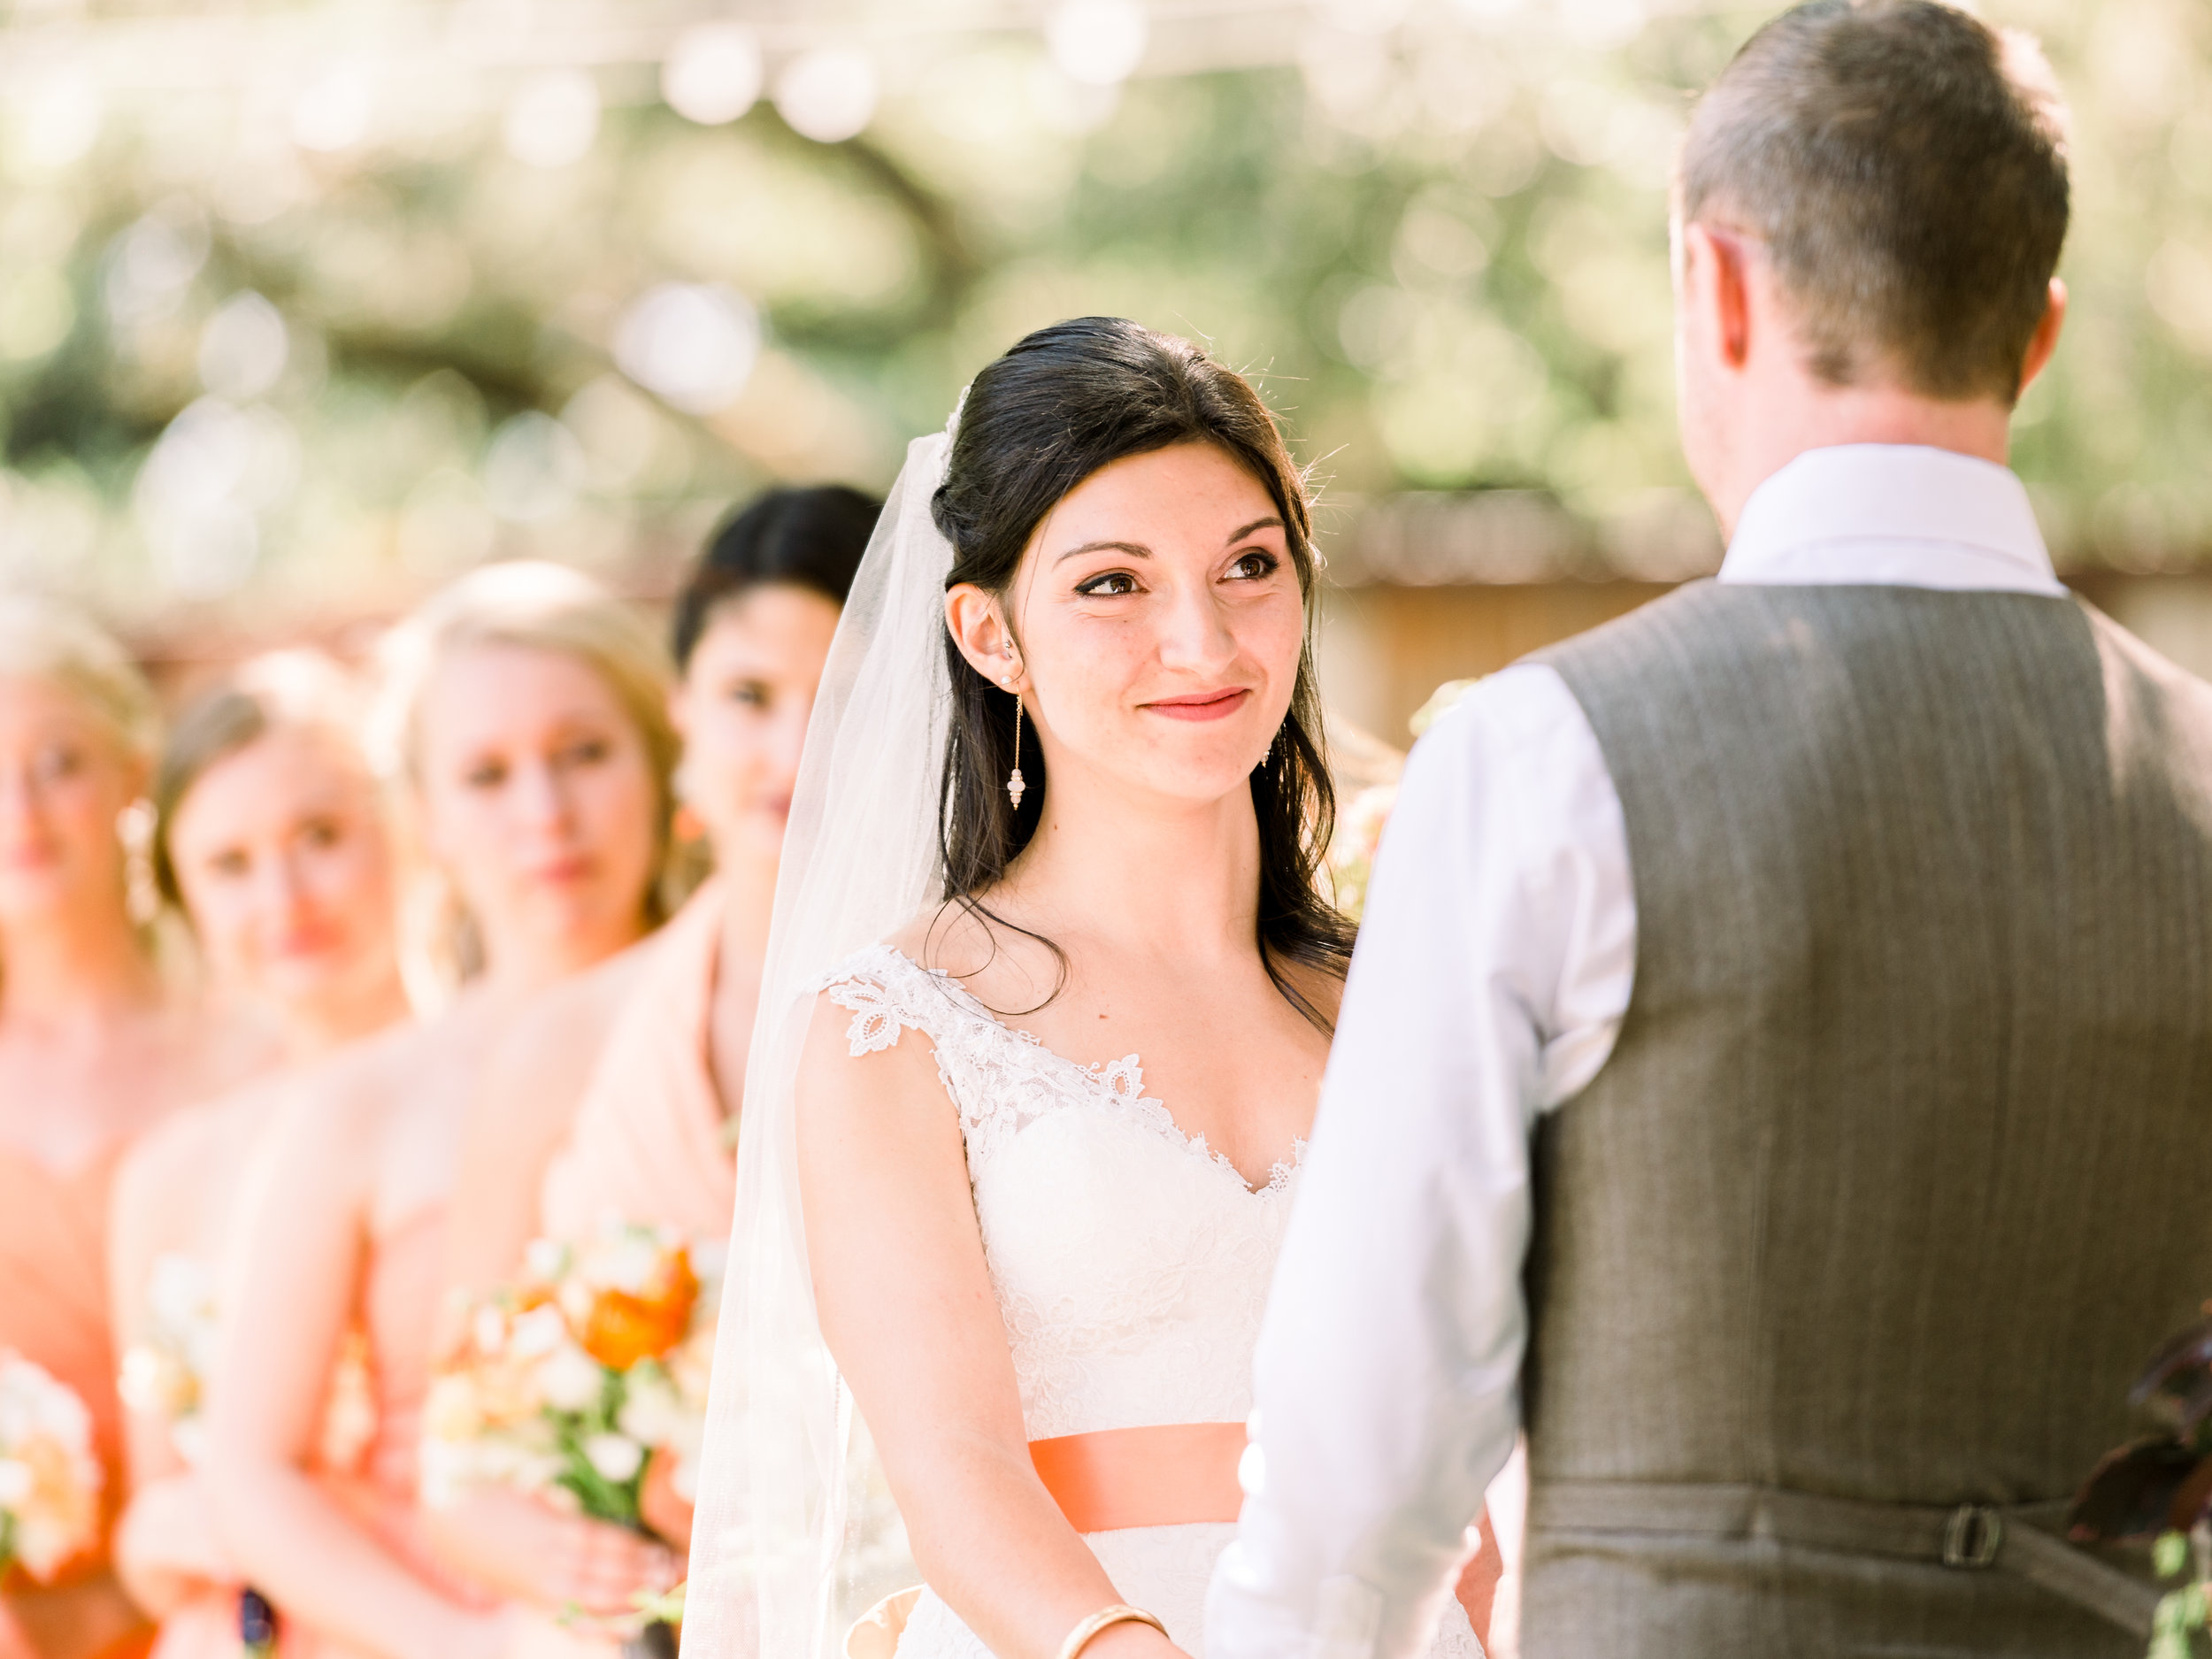 bride-adoring-the-groom-during-the-wedding-ceremony.jpg